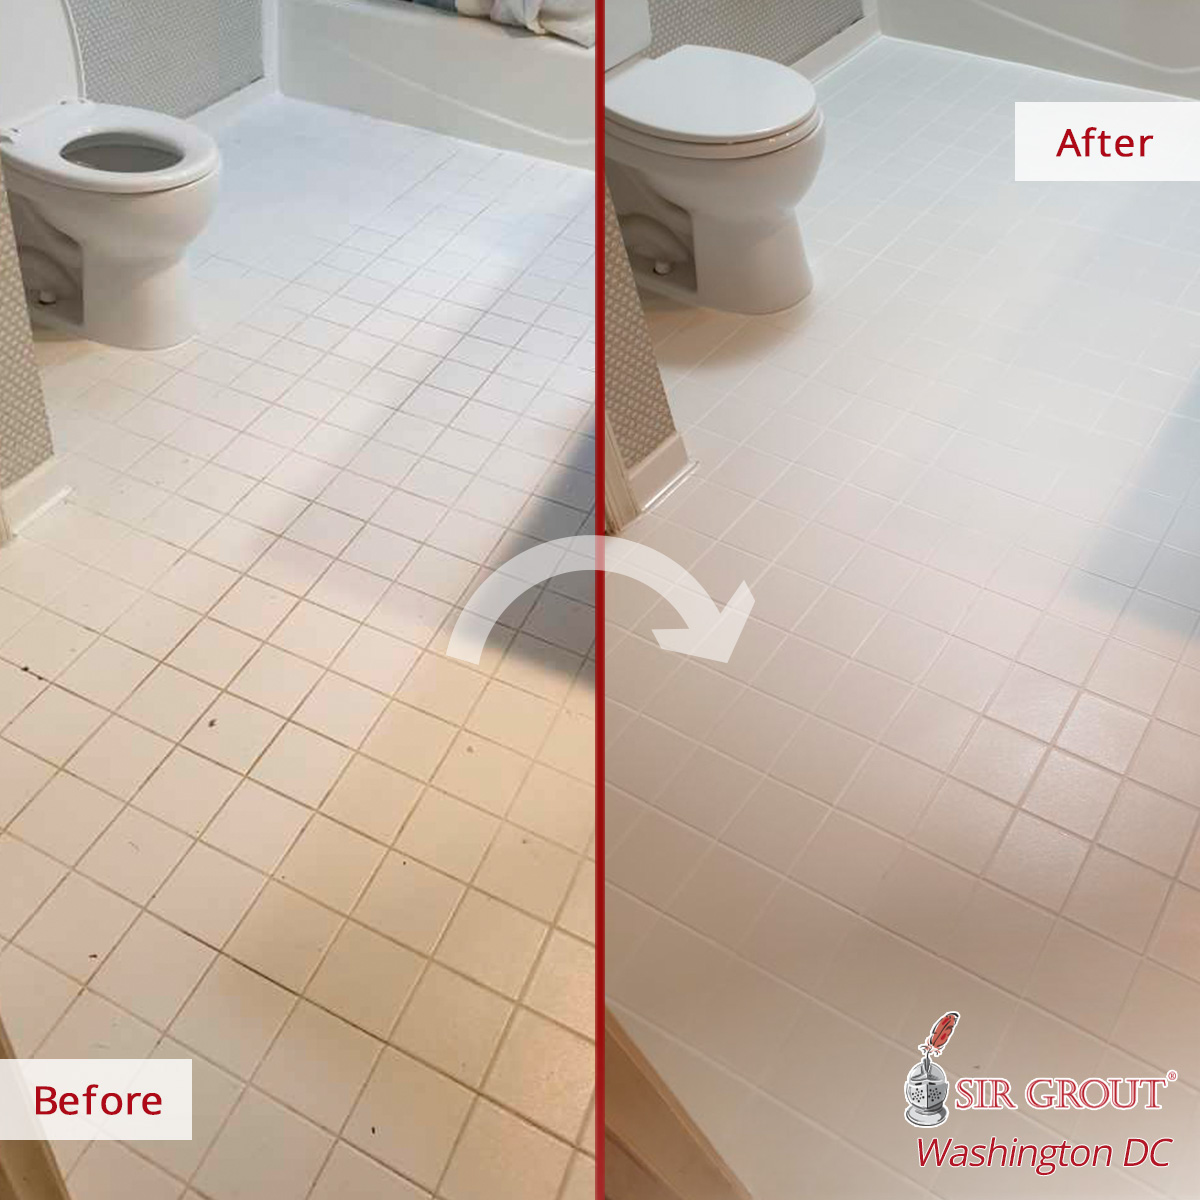 https www sirgroutwashingtondc com blog a professional tile cleaning in mclean va revamped this bathroom floor with a beautiful new look